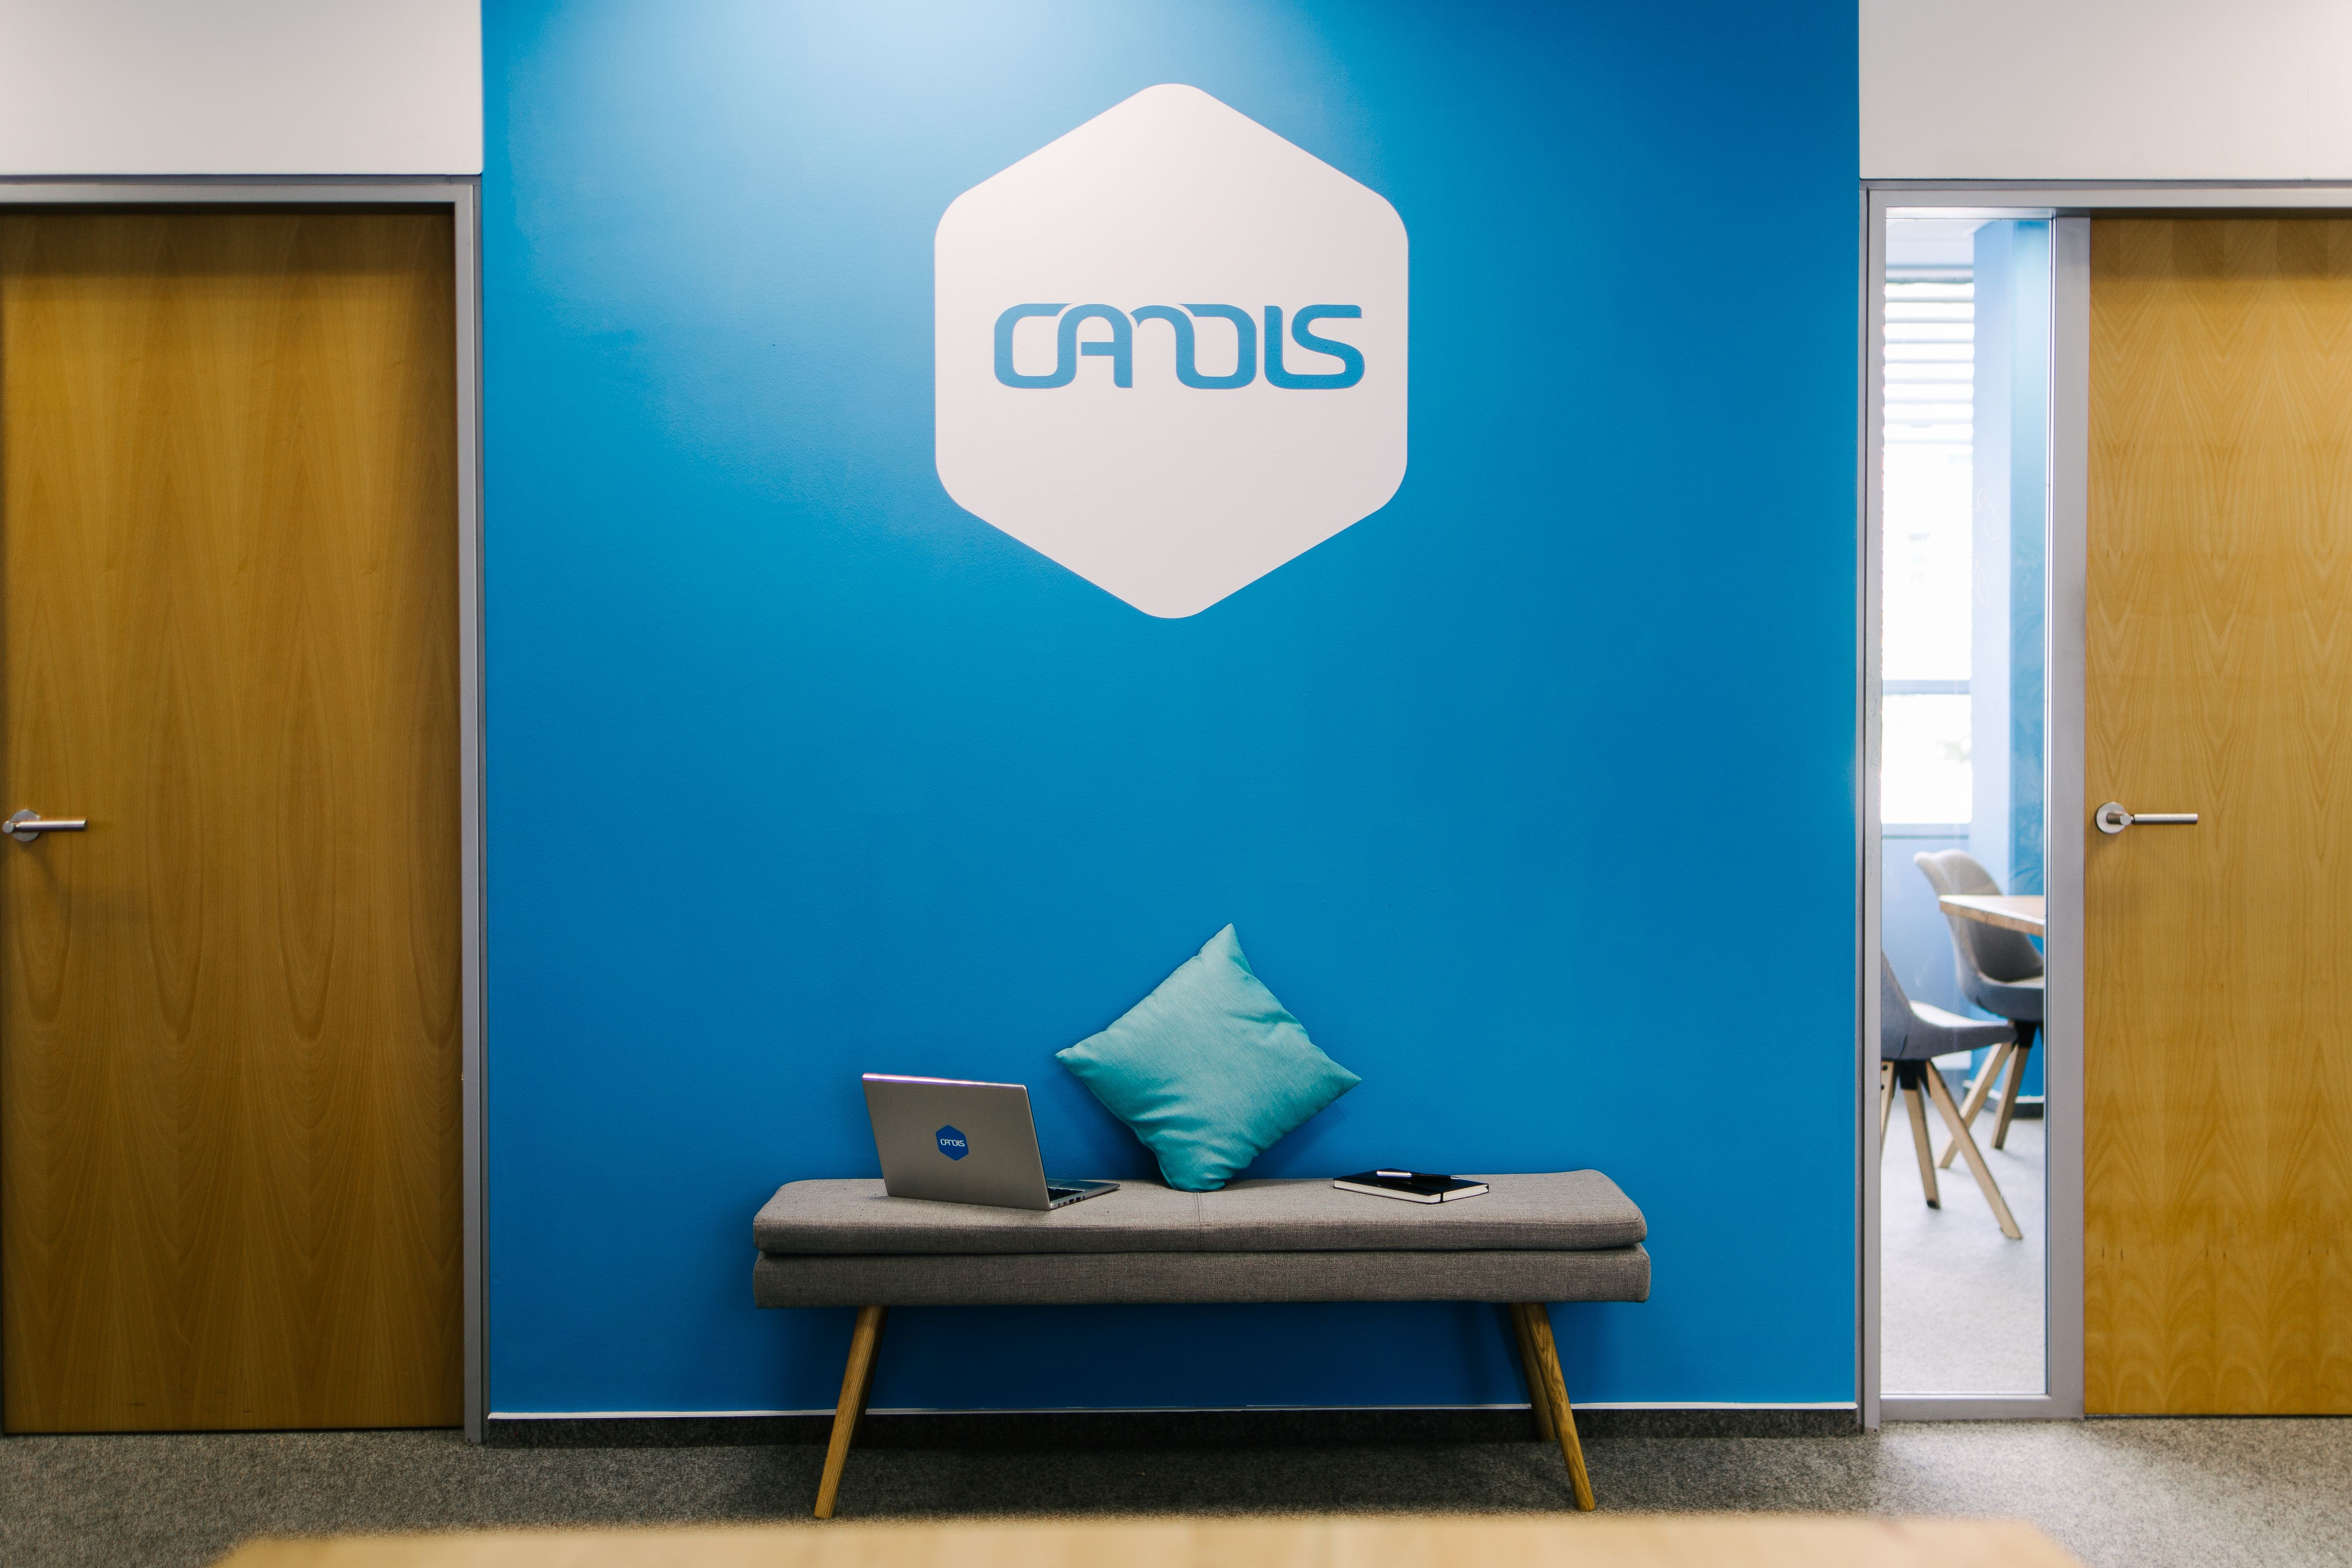 Fintech company Candis digitizes accounting processes - Now even more with Circula